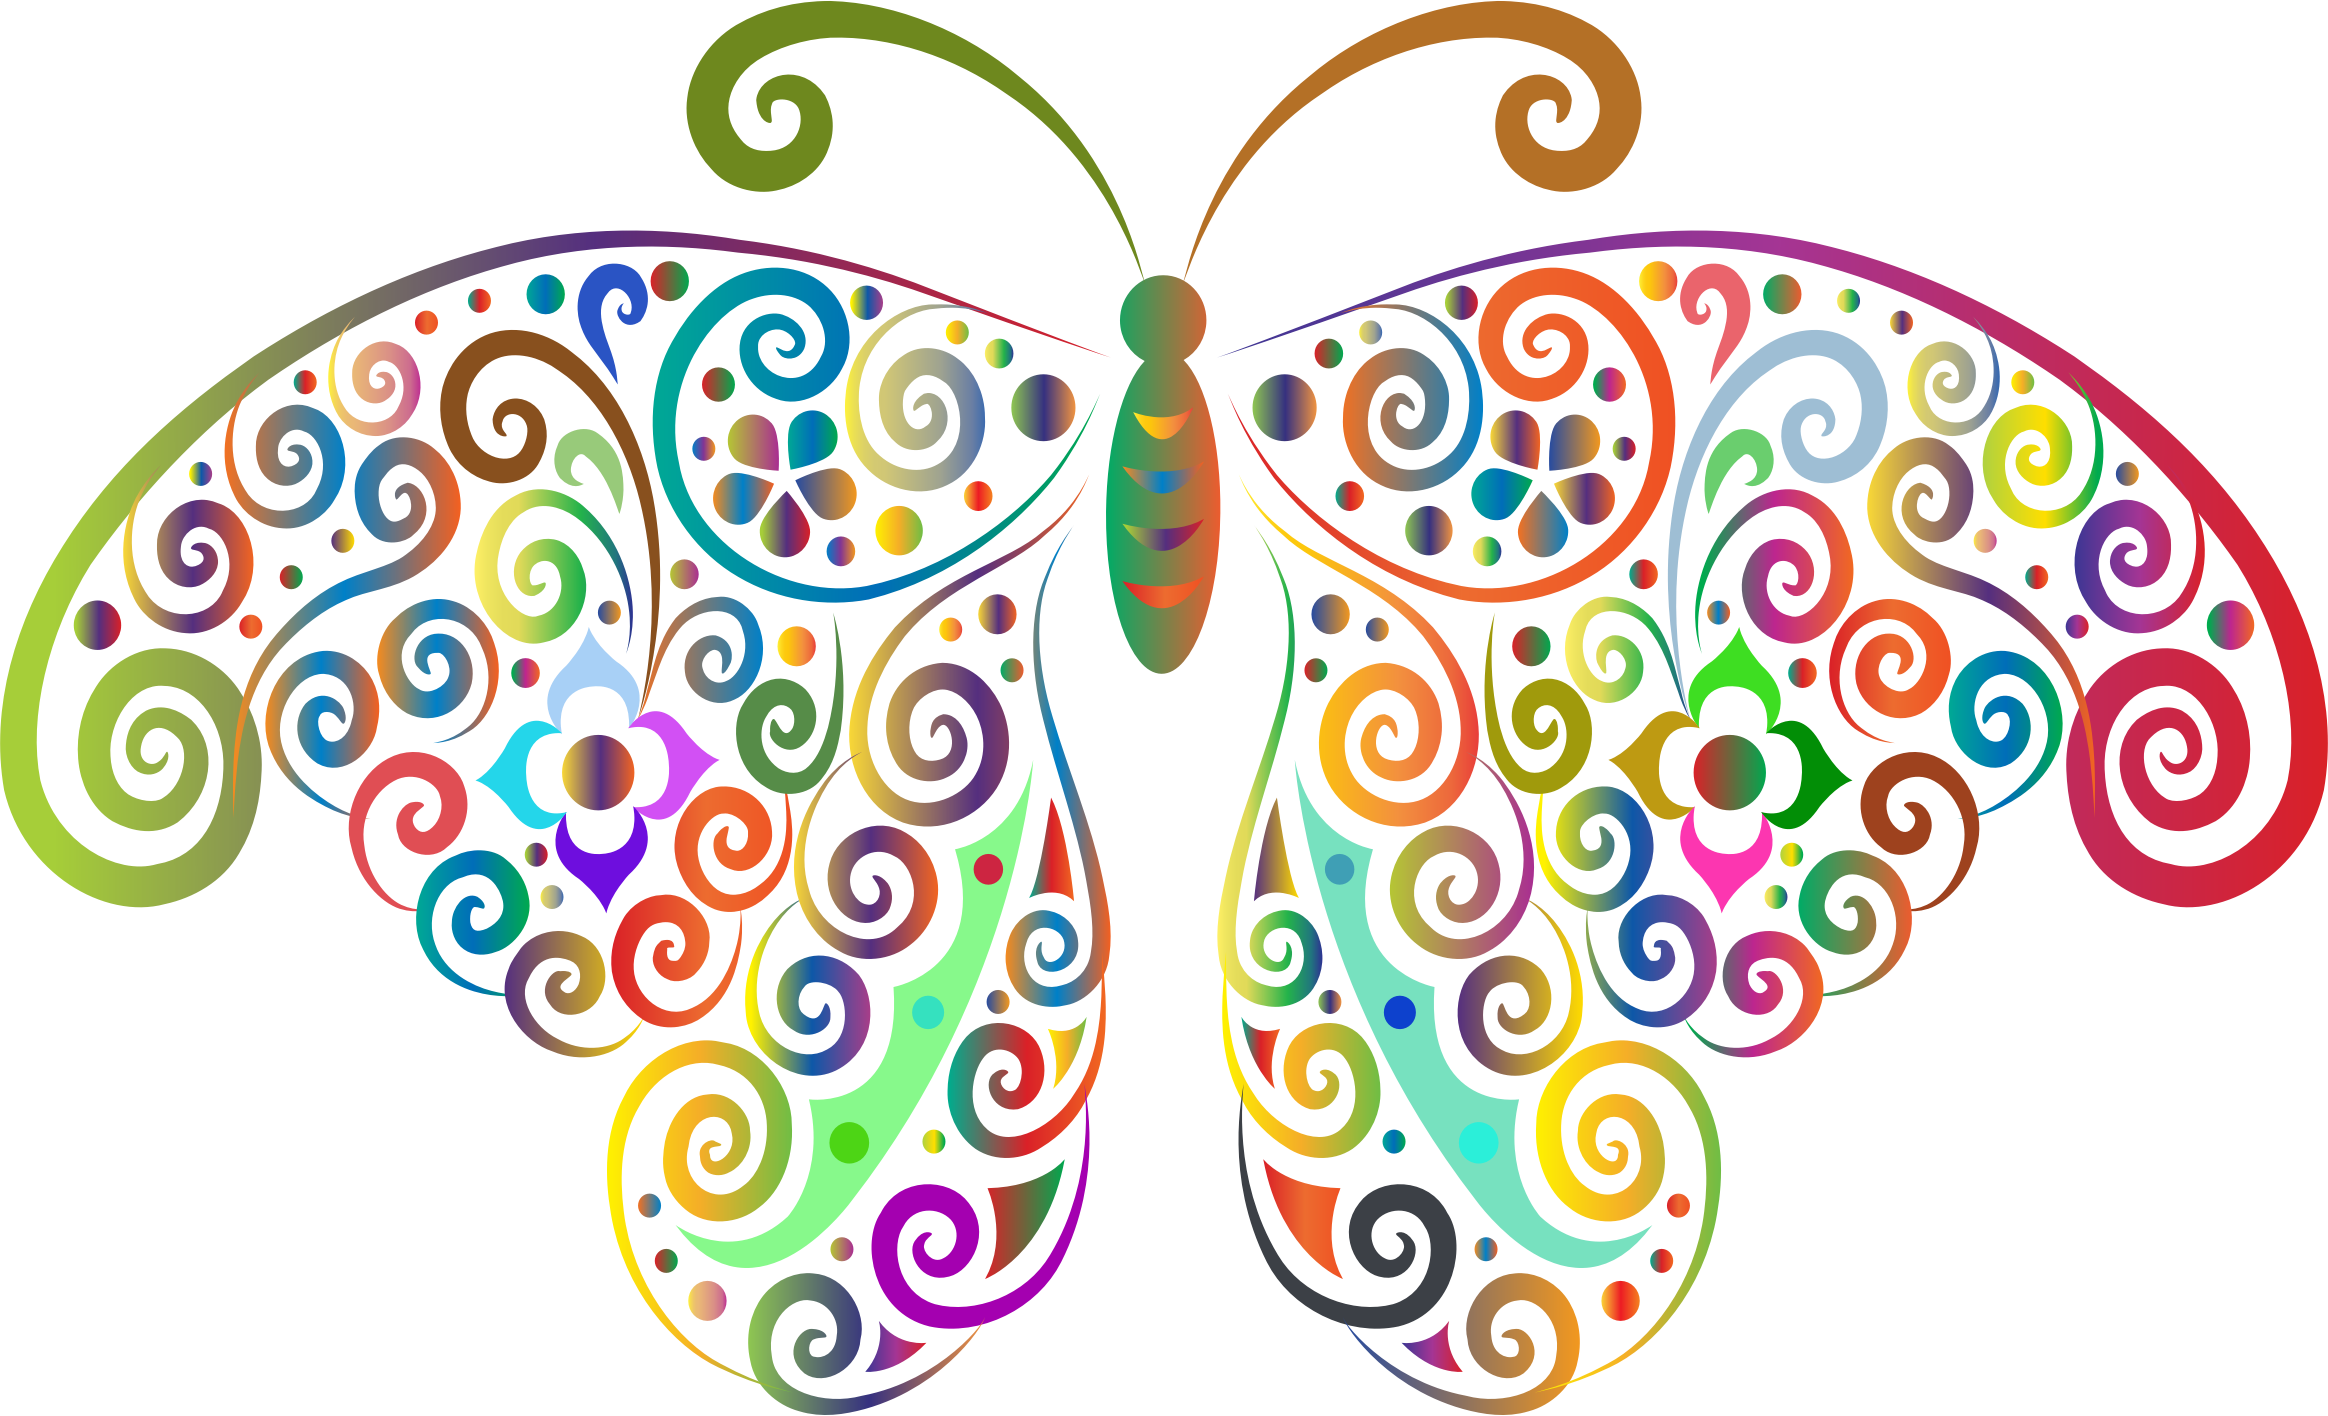 Butterfly clip art clear background. Prismatic floral flourish silhouette